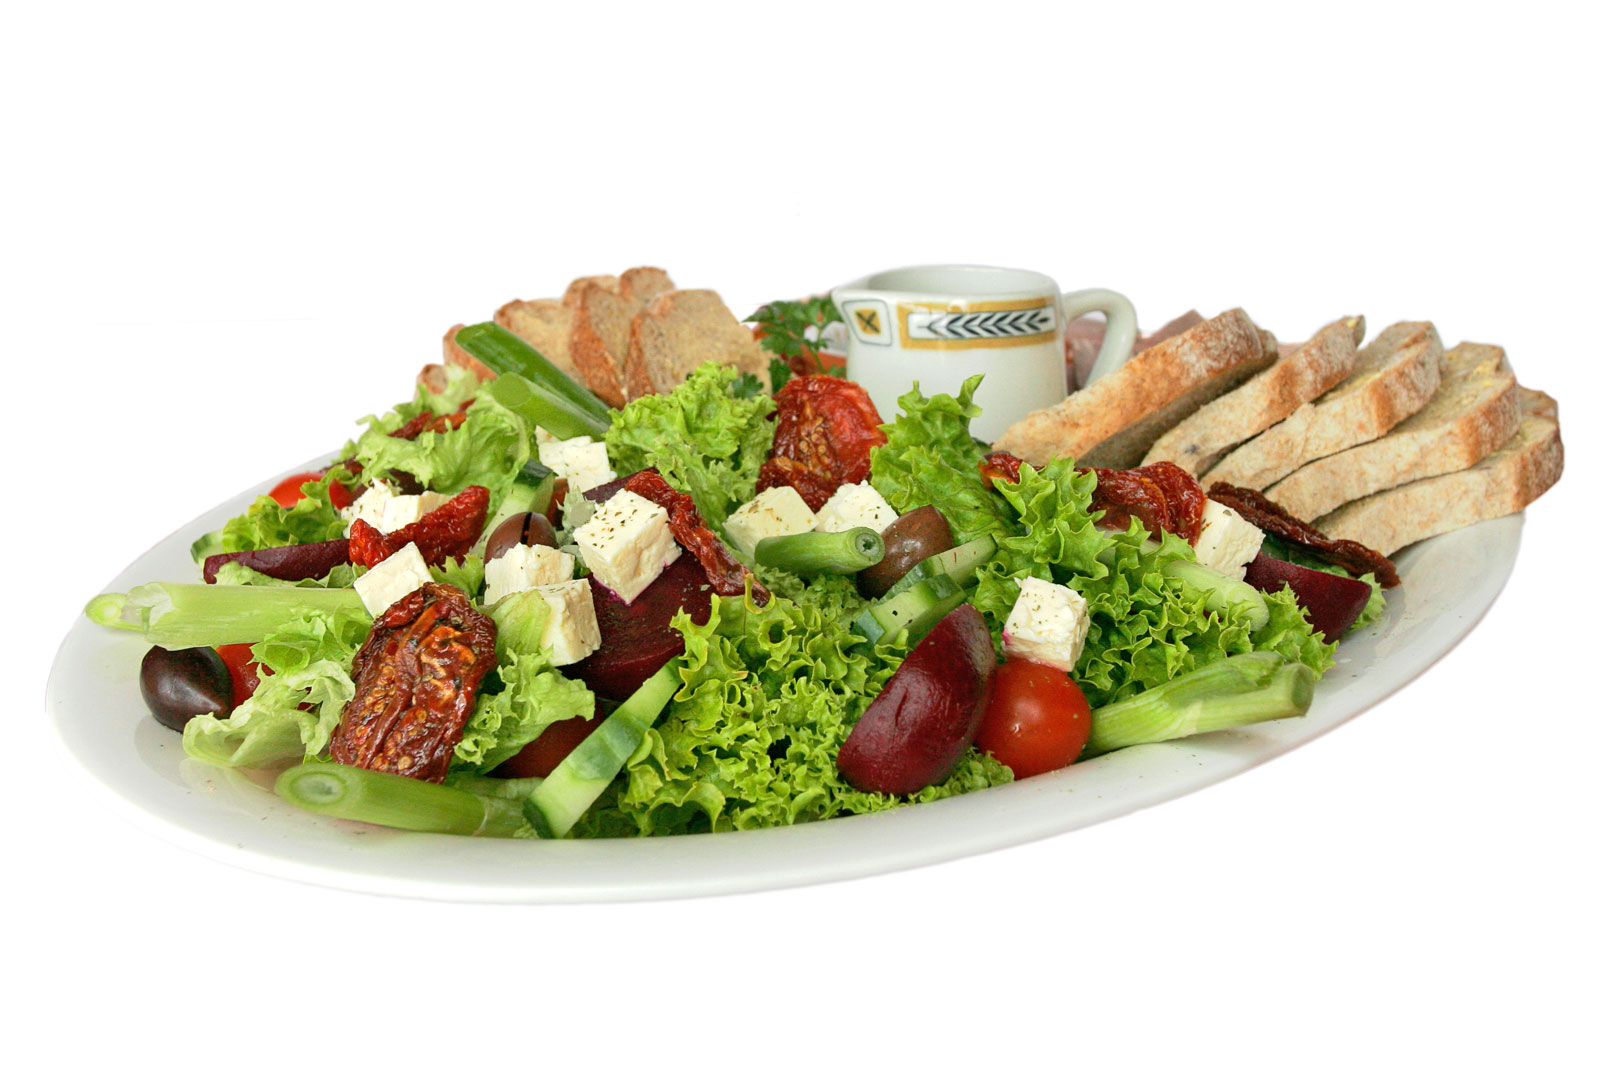 Top 5 benefits of eating salad with your meal